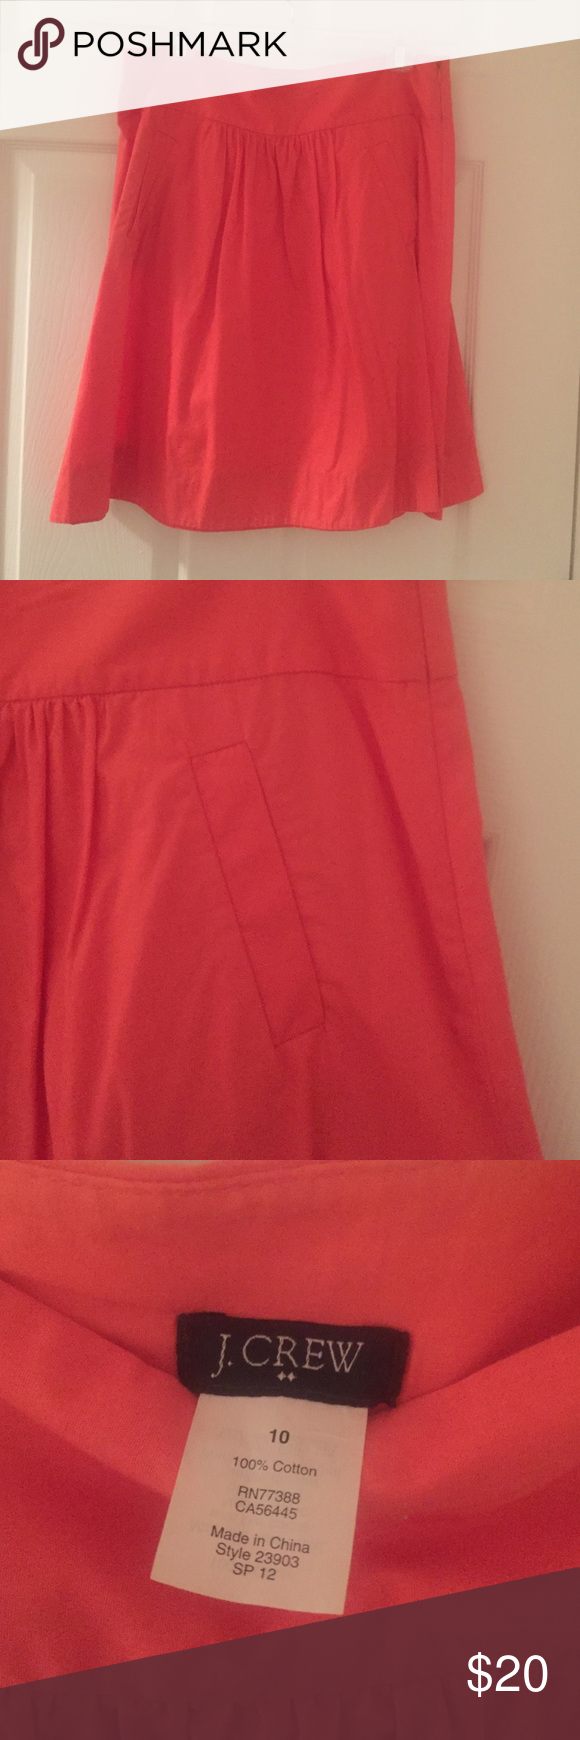 Coral J. Crew Skirt J.Crew skirt in bright, fun coral color. Pocket detailing with side zipper. Only worn a few times! J. Crew Skirts Midi